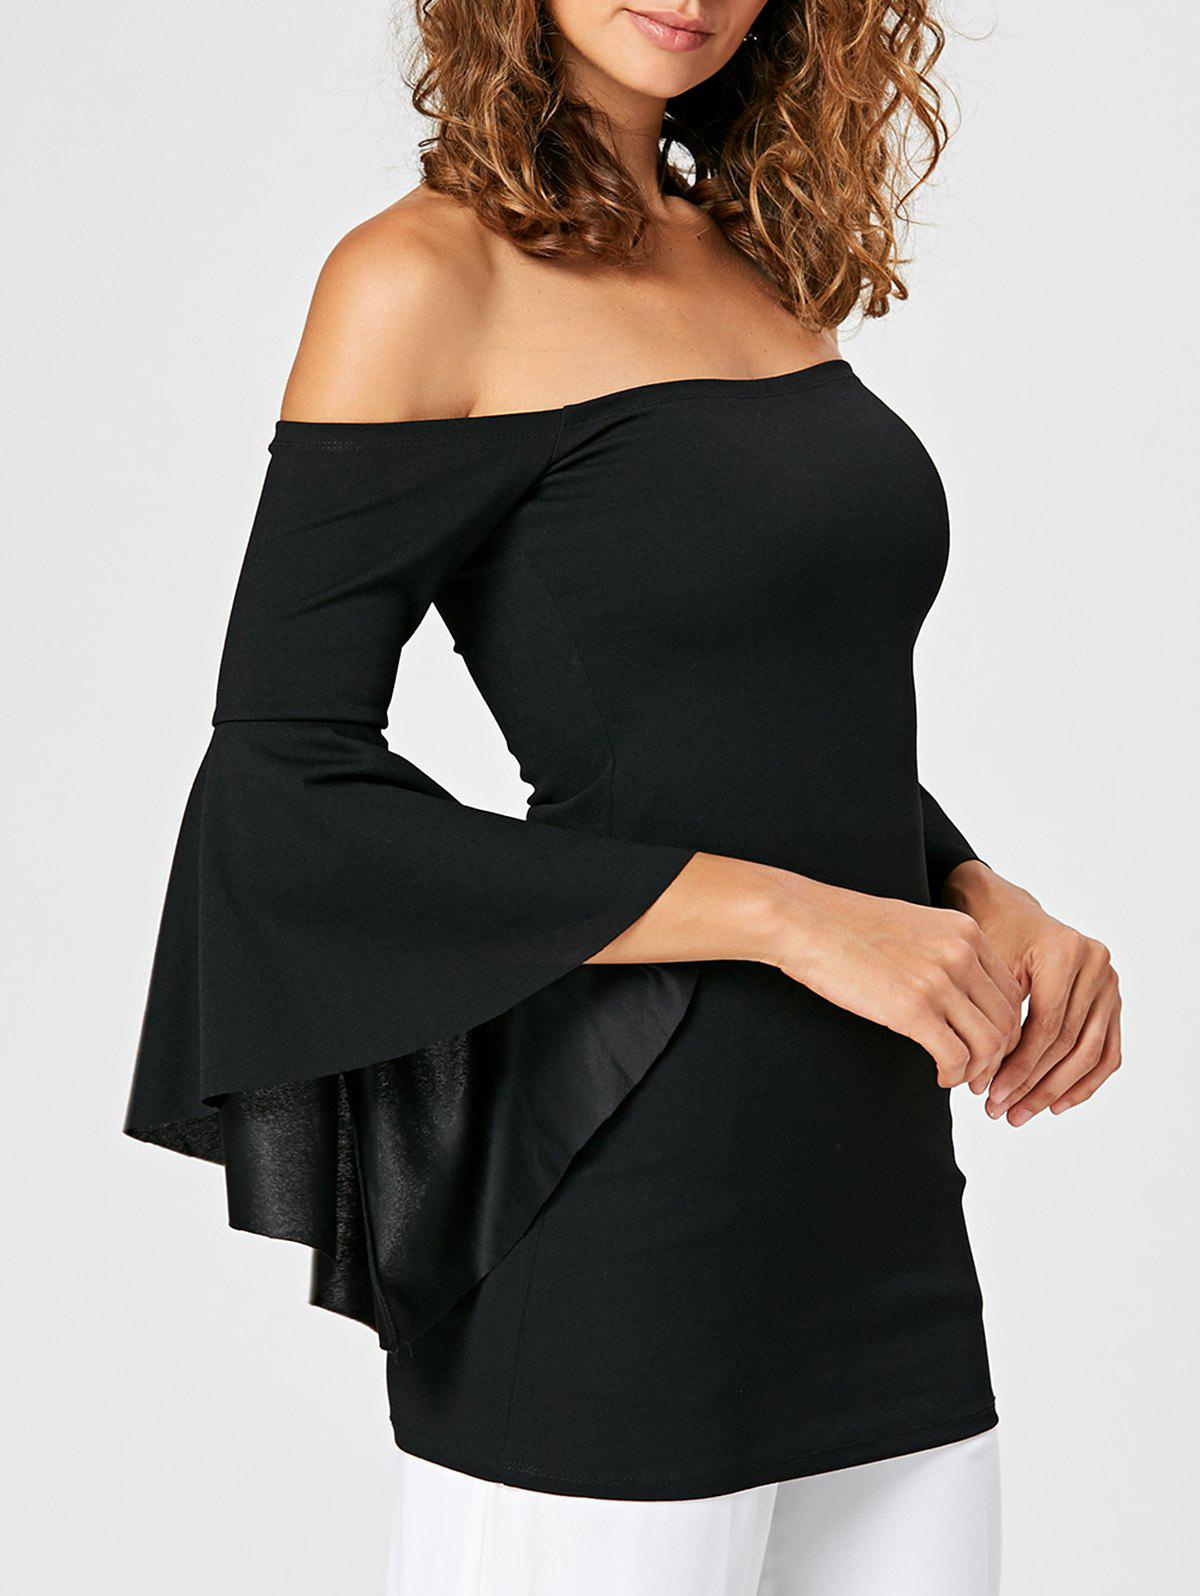 Flare Sleeve Fitted Off The Shoulder BlouseWOMEN<br><br>Size: L; Color: BLACK; Material: Polyester; Shirt Length: Long; Sleeve Length: Full; Collar: Off The Shoulder; Style: Fashion; Pattern Type: Solid; Season: Fall,Spring; Weight: 0.3200kg; Package Contents: 1 x Blouse;